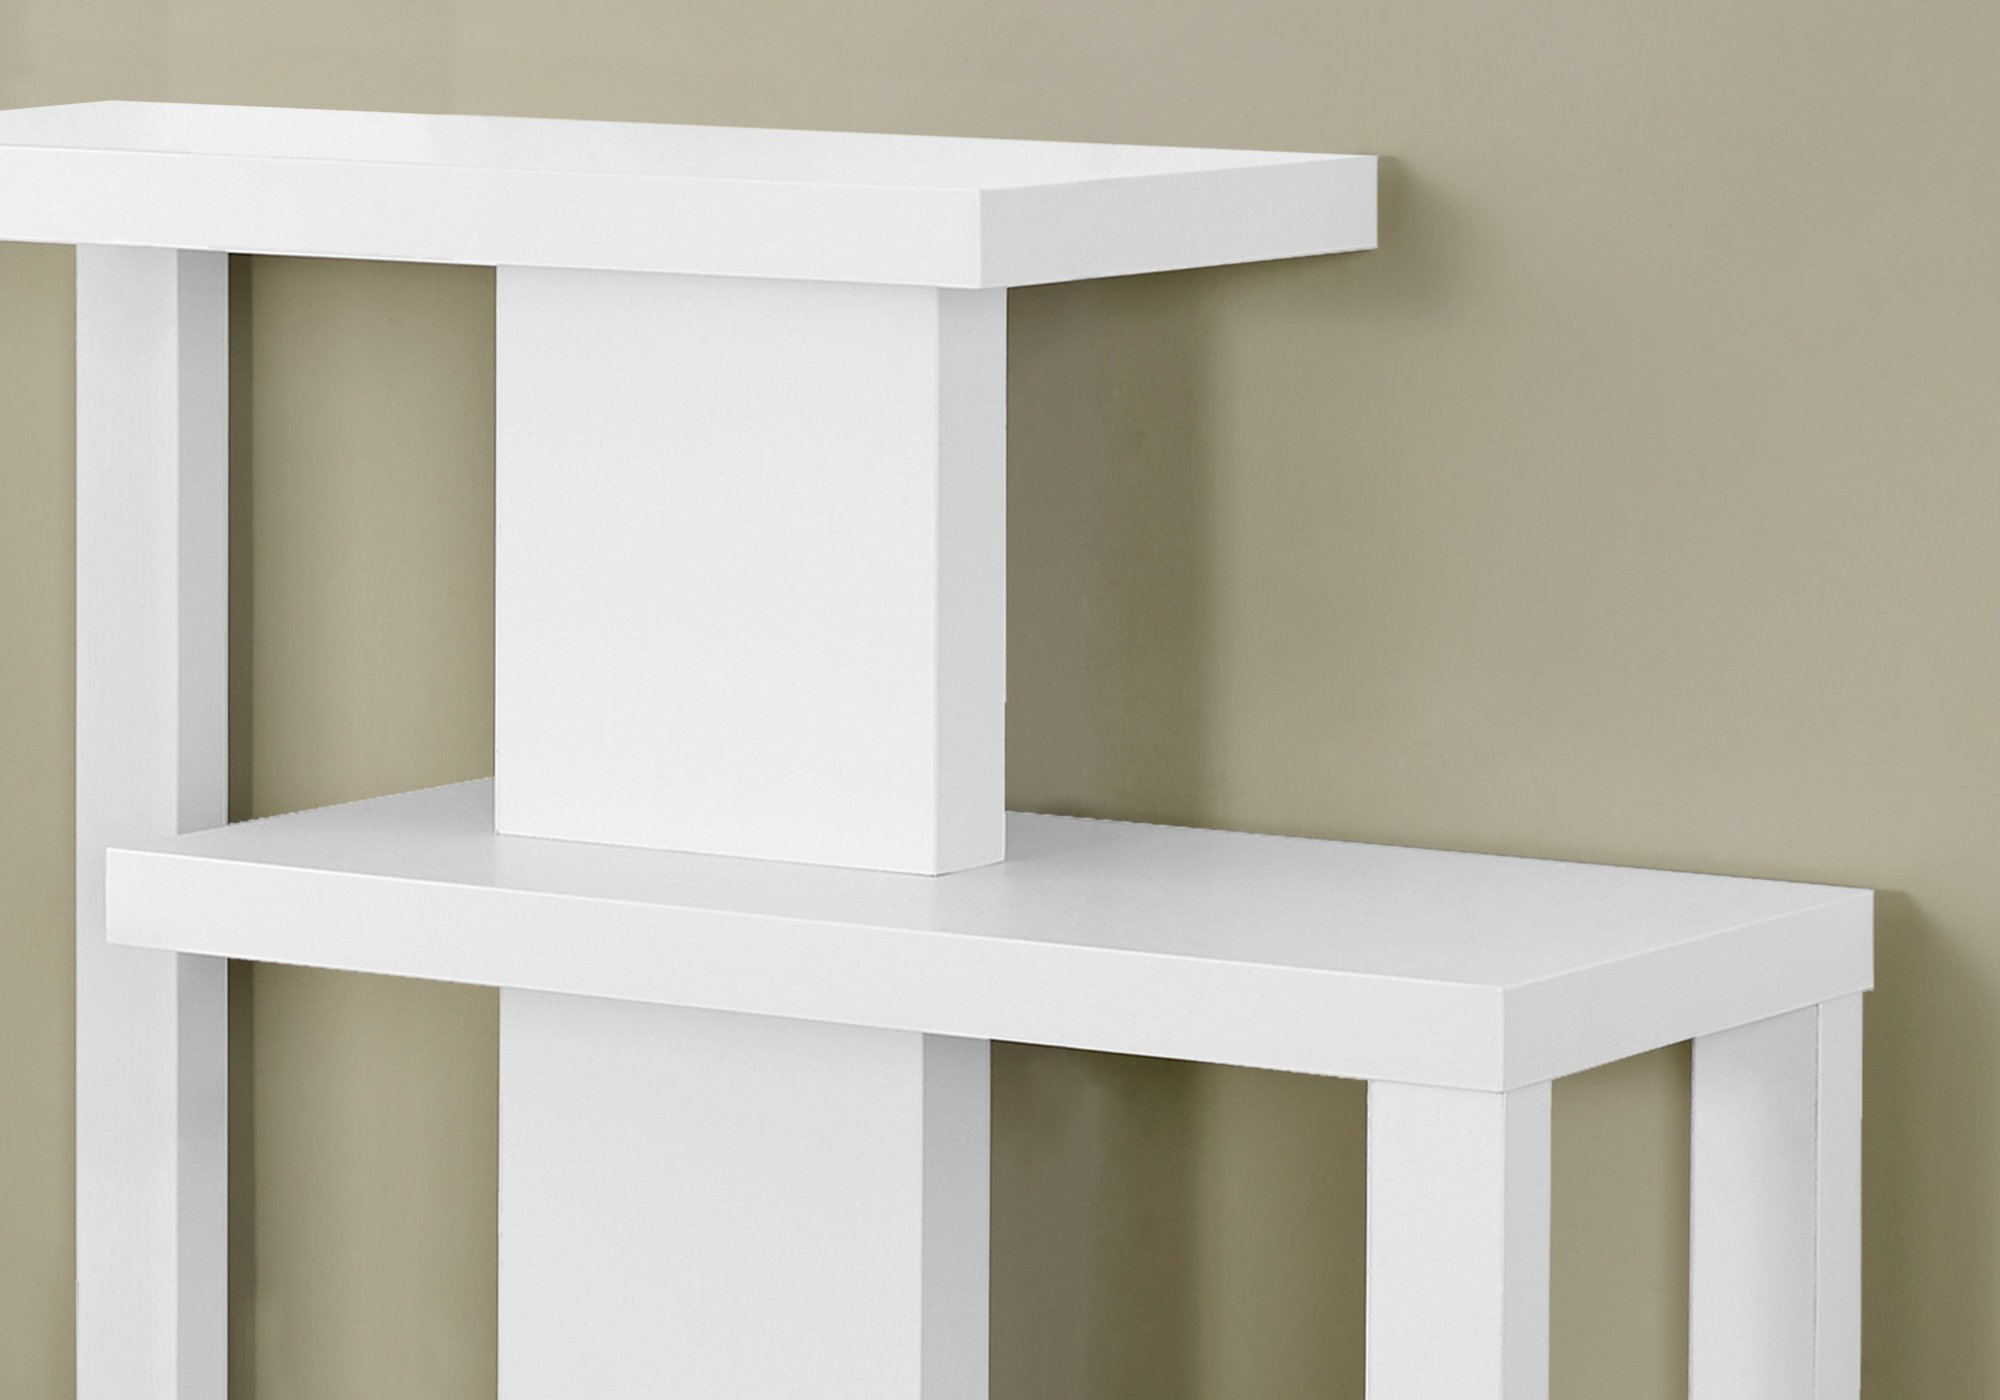 amazing monarch specialties accent table white hall console glass end with shelf round wicker side nightstand furniture target small desk combo porcelain vase lamp outdoor lounge